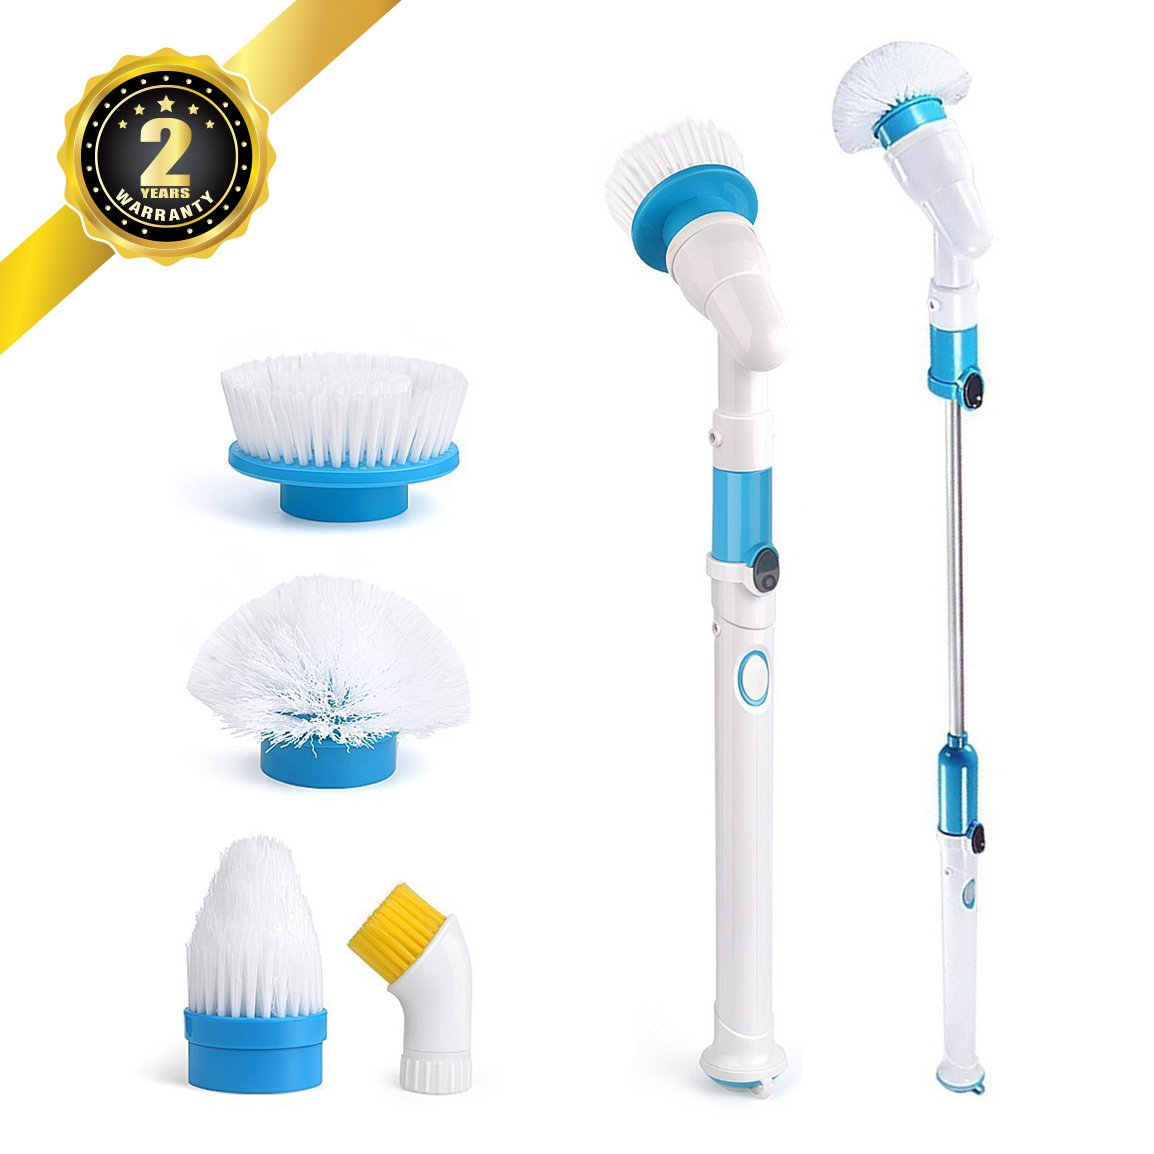 Electric Spin Scrubber ELEPOWSTAR Automatic Cleaning Brushes - Automatic bathroom scrubber